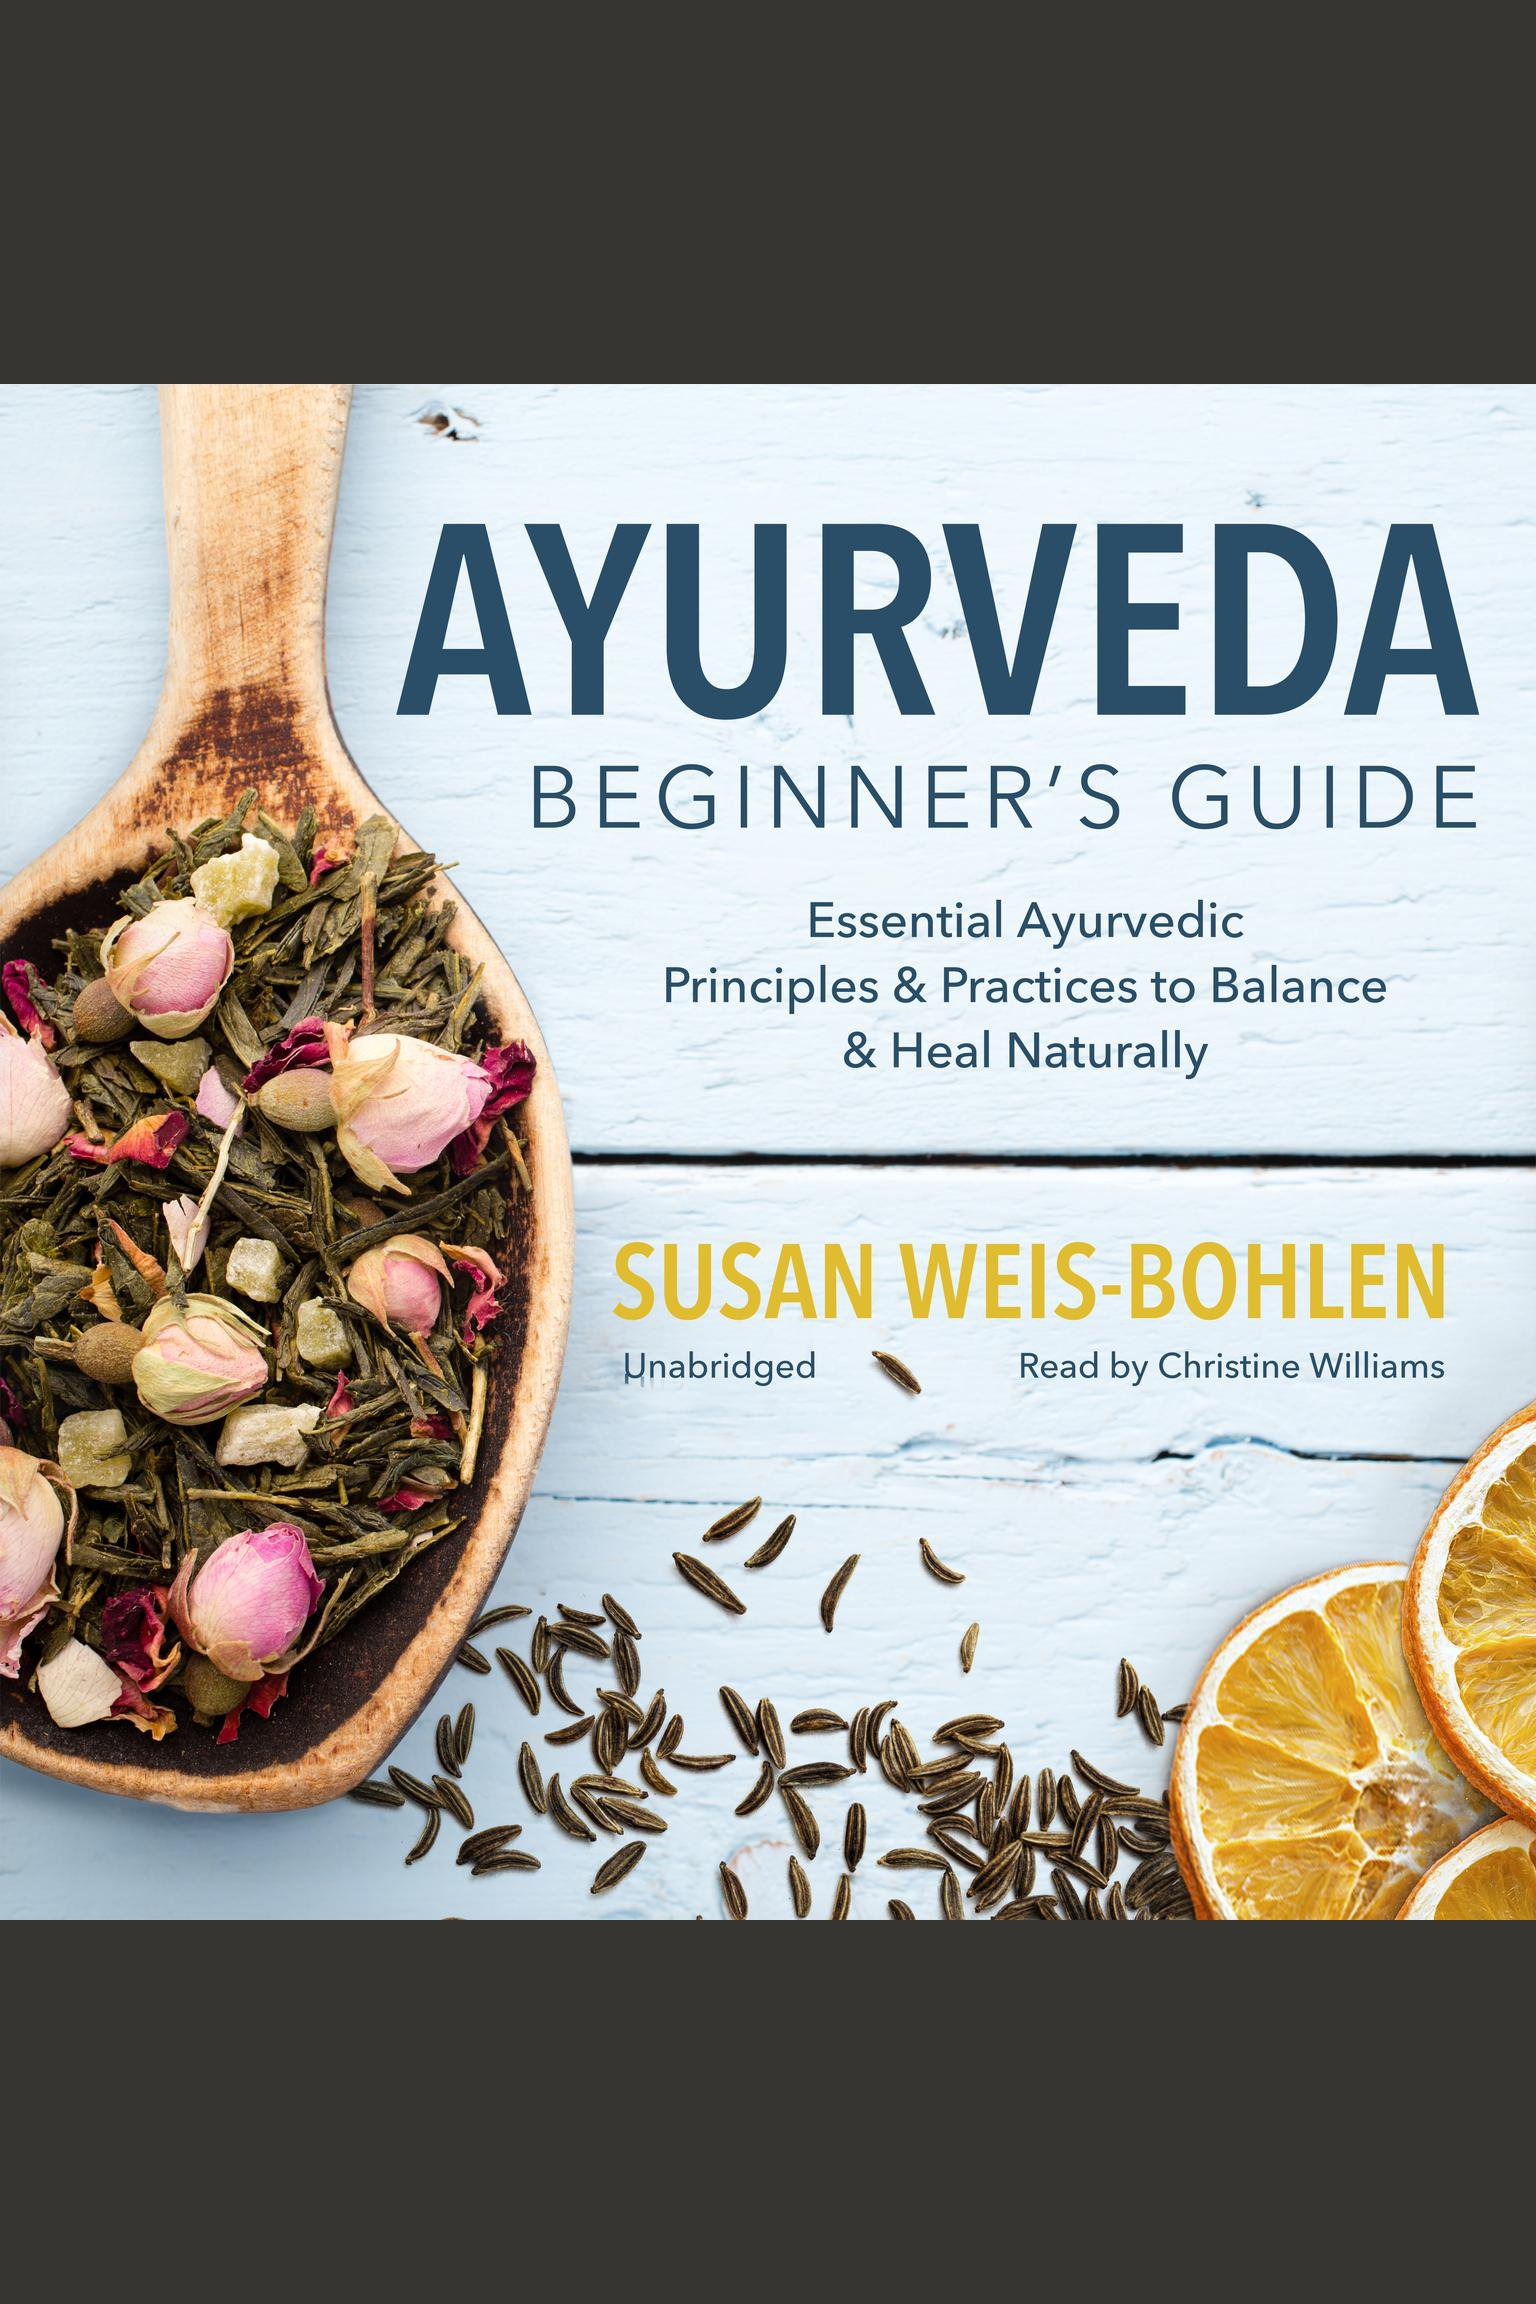 Ayurveda beginner's guide essential Ayurvedic principles & practices to balance & heal naturally cover image